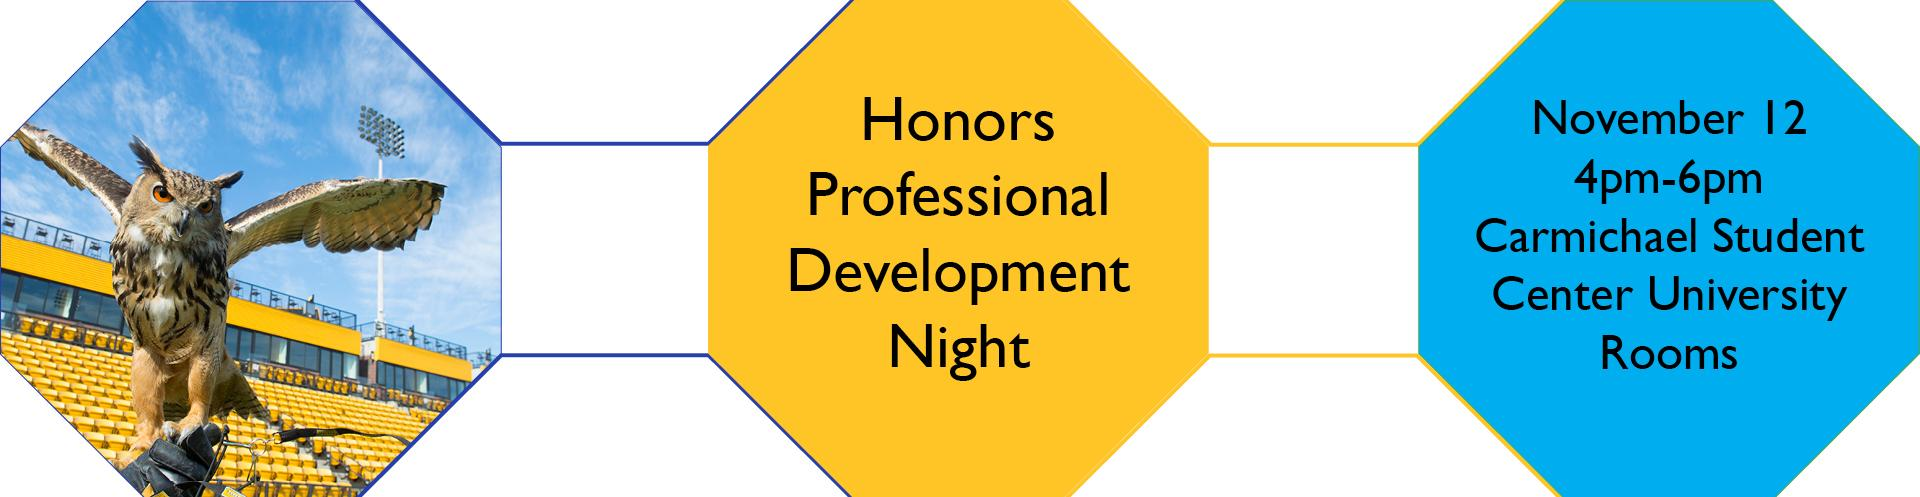 Honors Professional Development Night